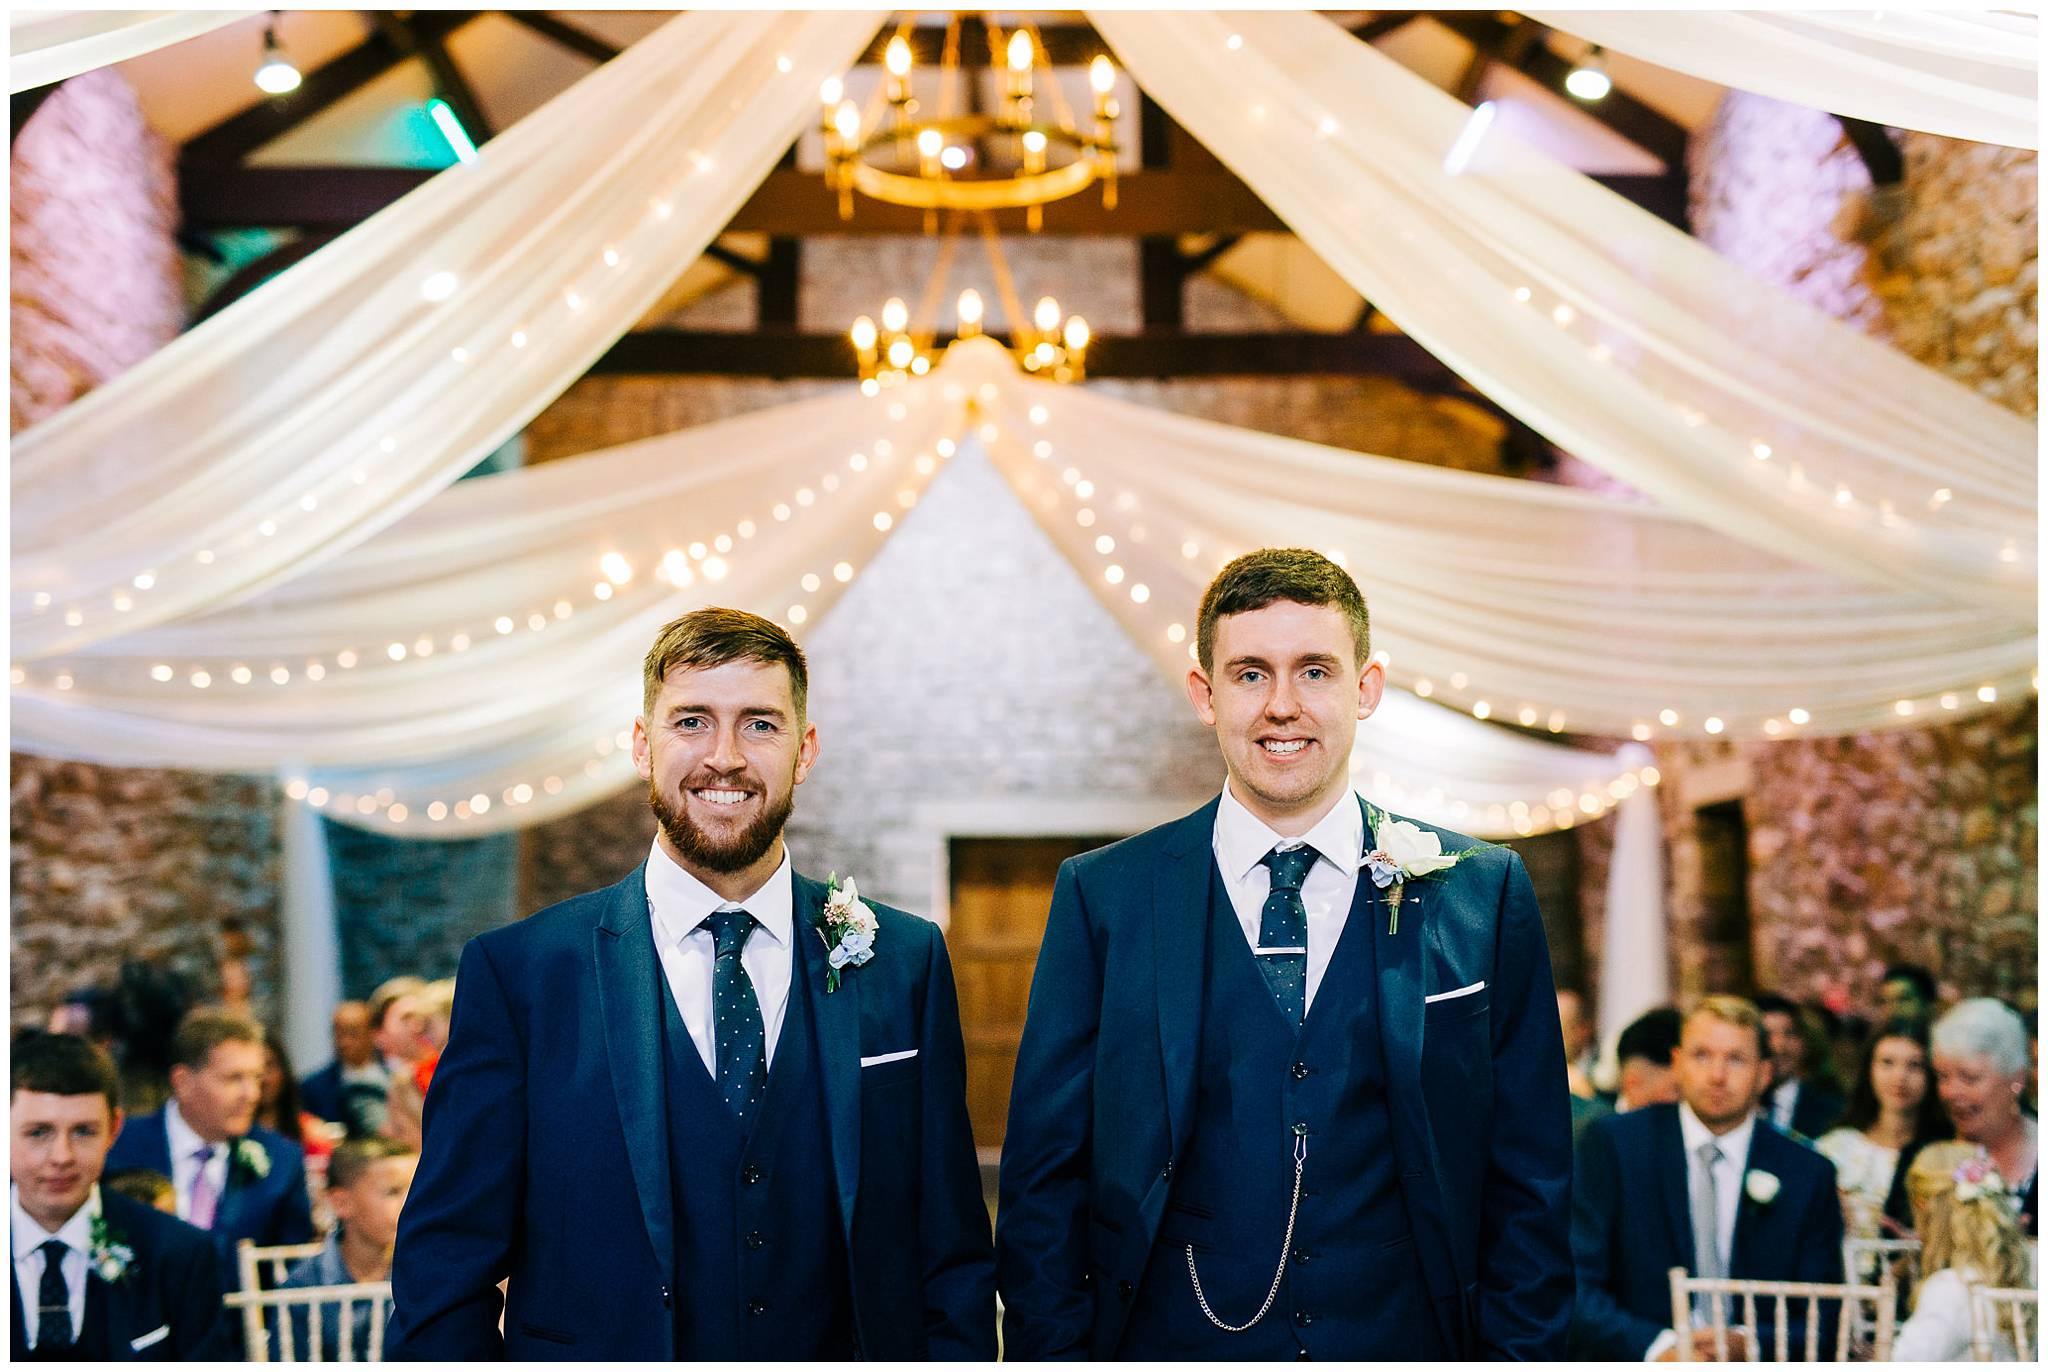 the groom and his best man smile for a portrait before the brides arrival